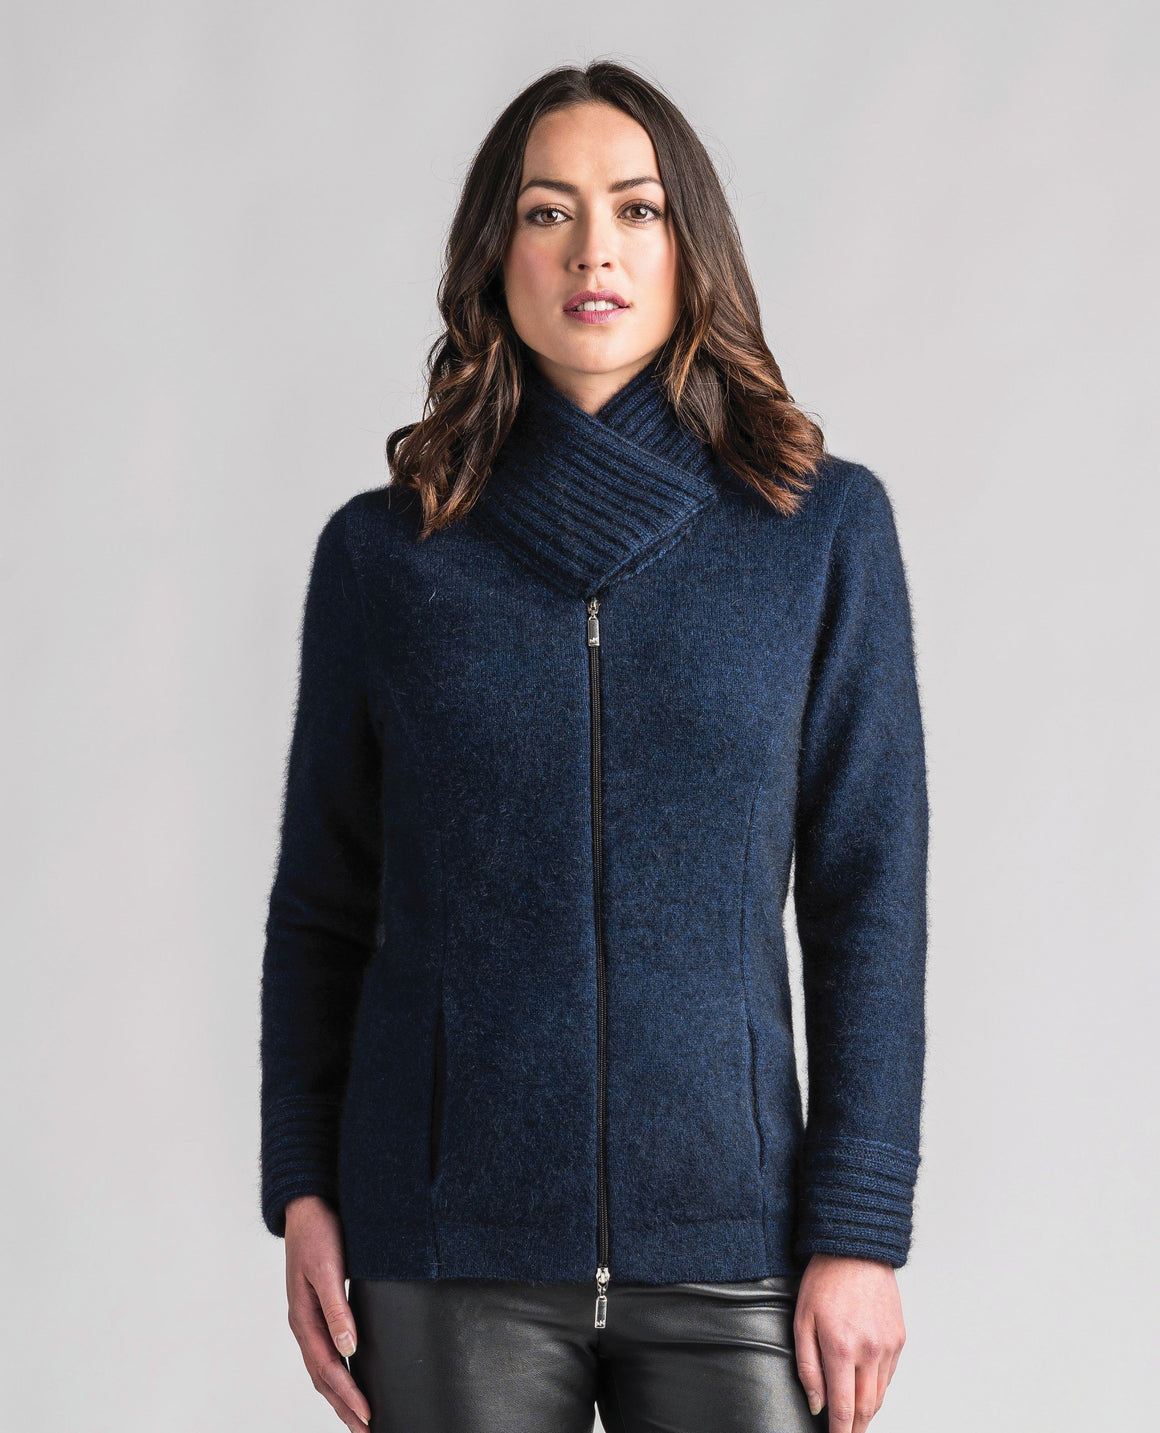 Merinomink-Womens Selwyn Jacket-shop online at www.thewoolpress.com